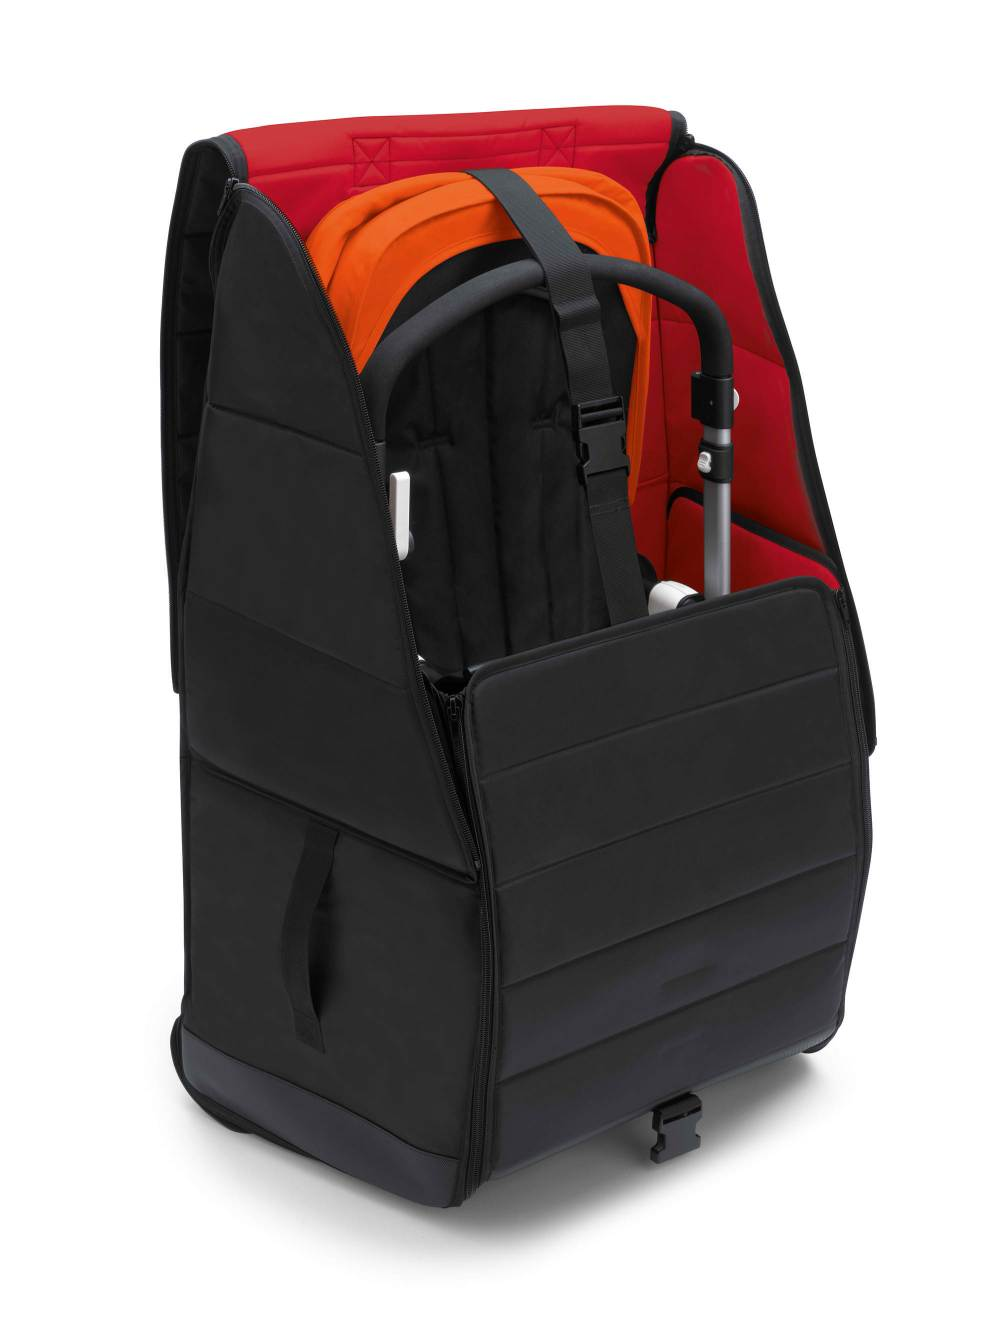 04_bugaboo_comfort_transport_bag_b